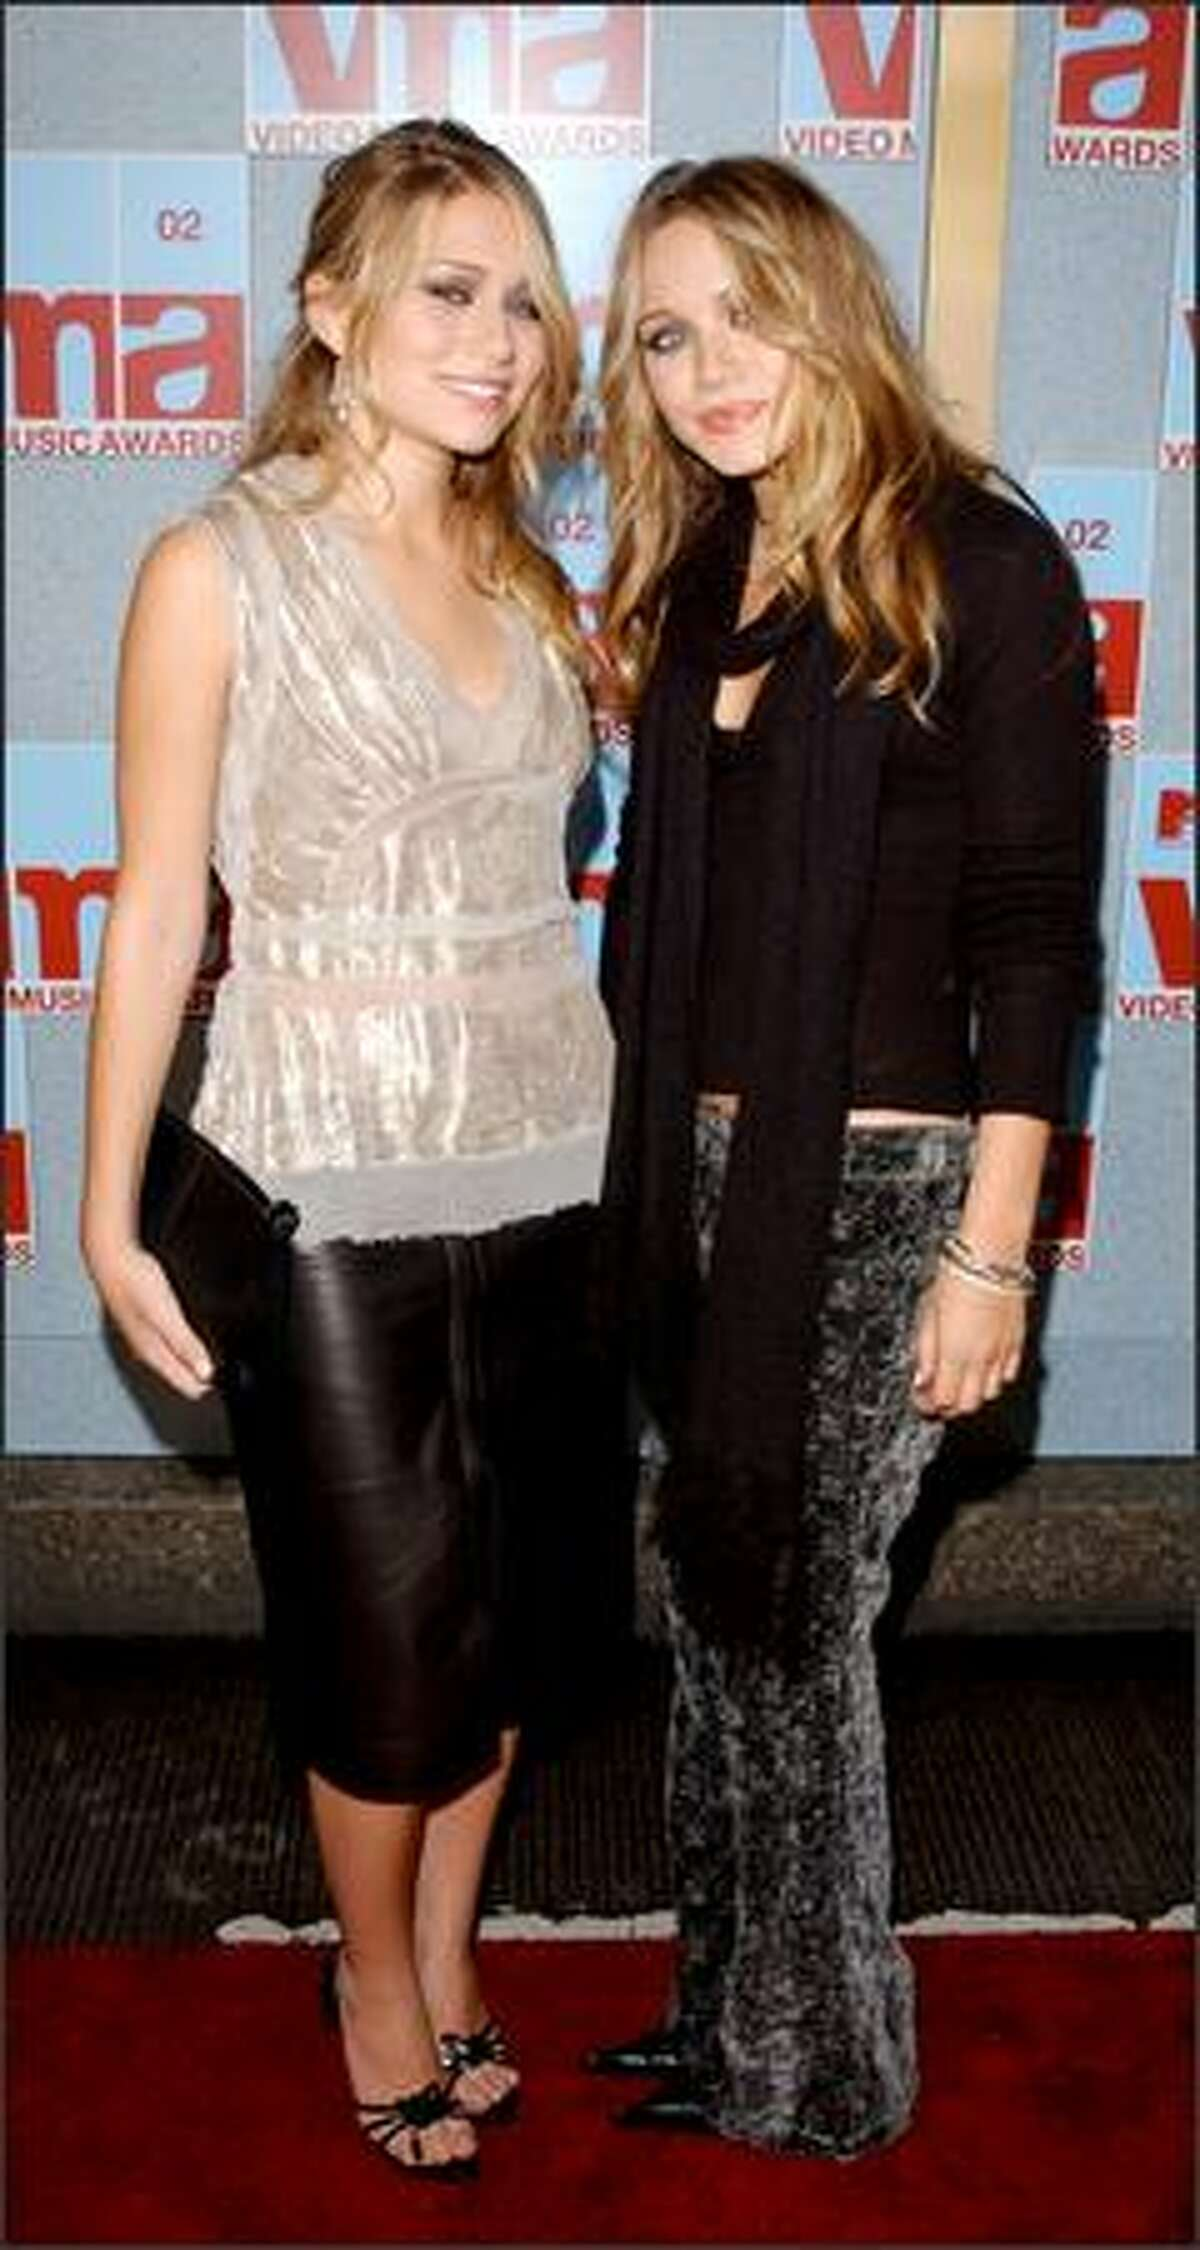 Ashley (left) and Mary-Kate arrive at the 2002 MTV Video Music Awards in New York, Aug. 29, 2002.